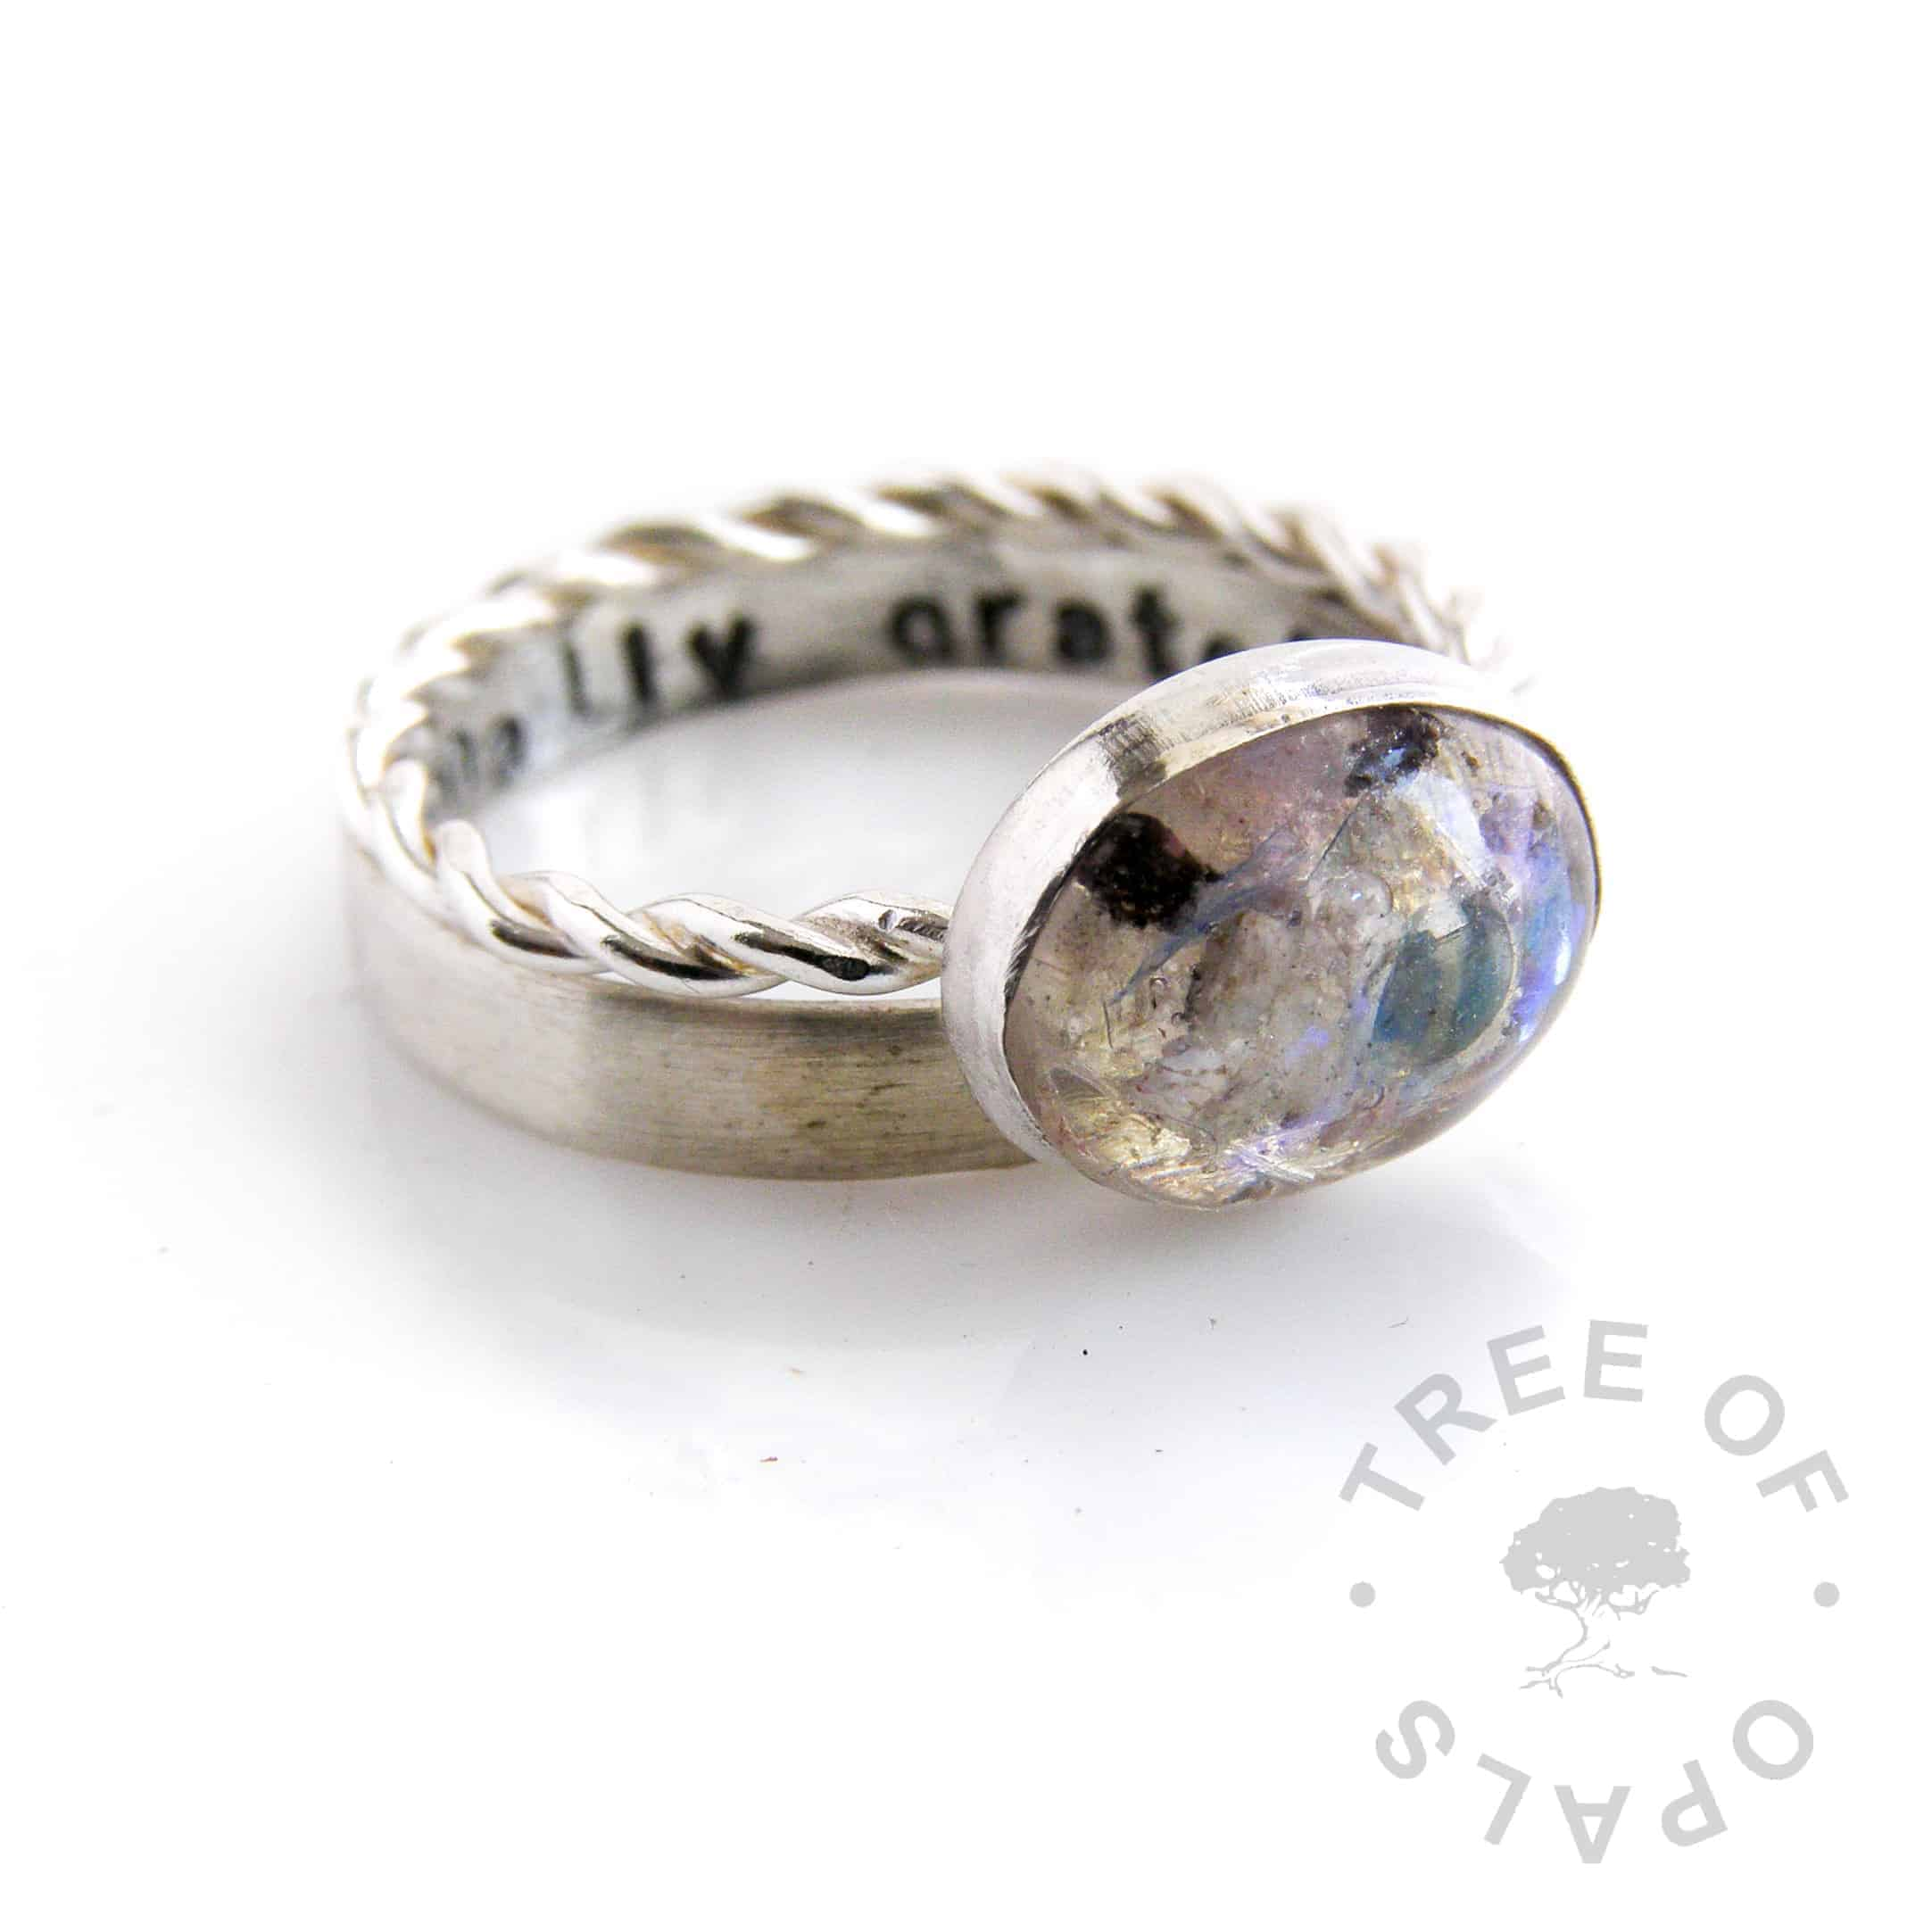 cremation ash ring stack with oval twisted band (retired) cremains ring including blue opalescent flakes and a stamped 3mm stacking ring